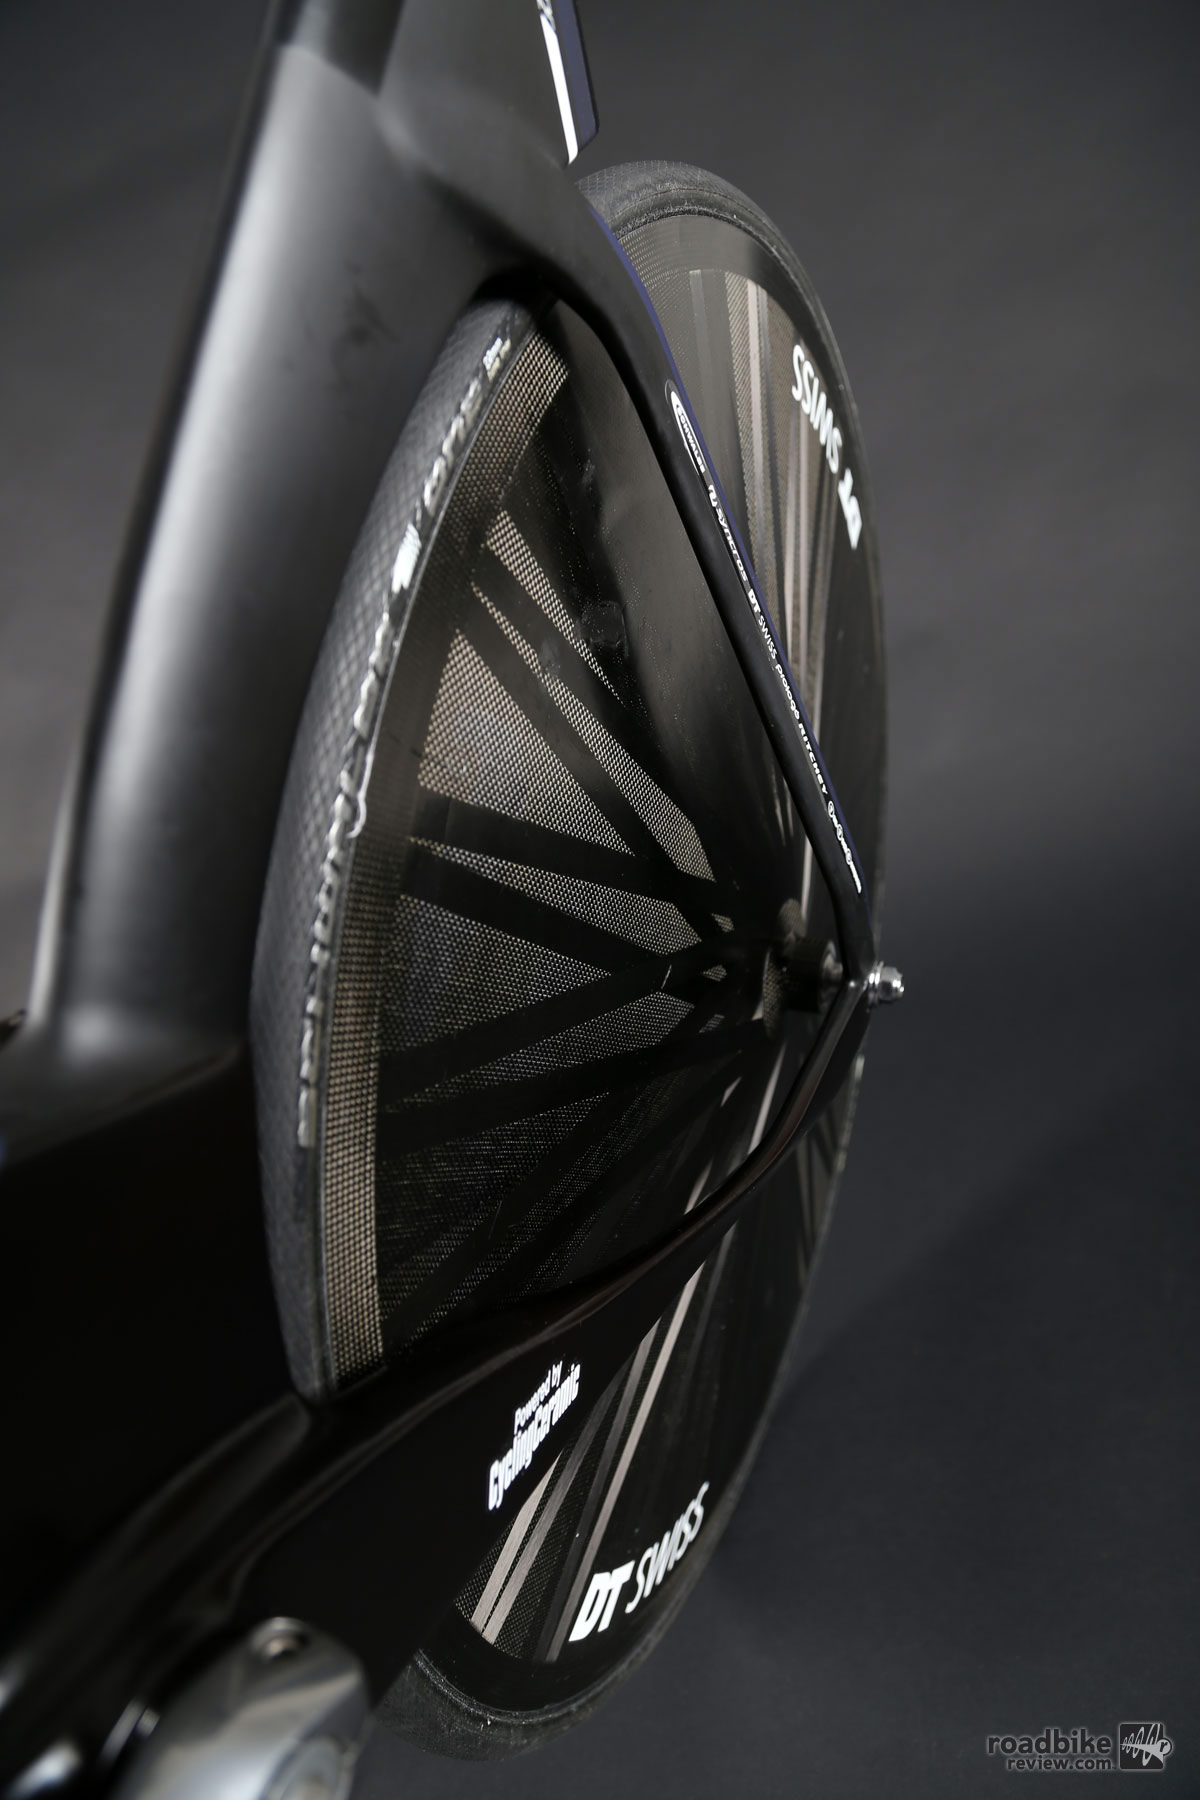 Disc wheels labeled as DT Swiss, but actually made by Lightweight.